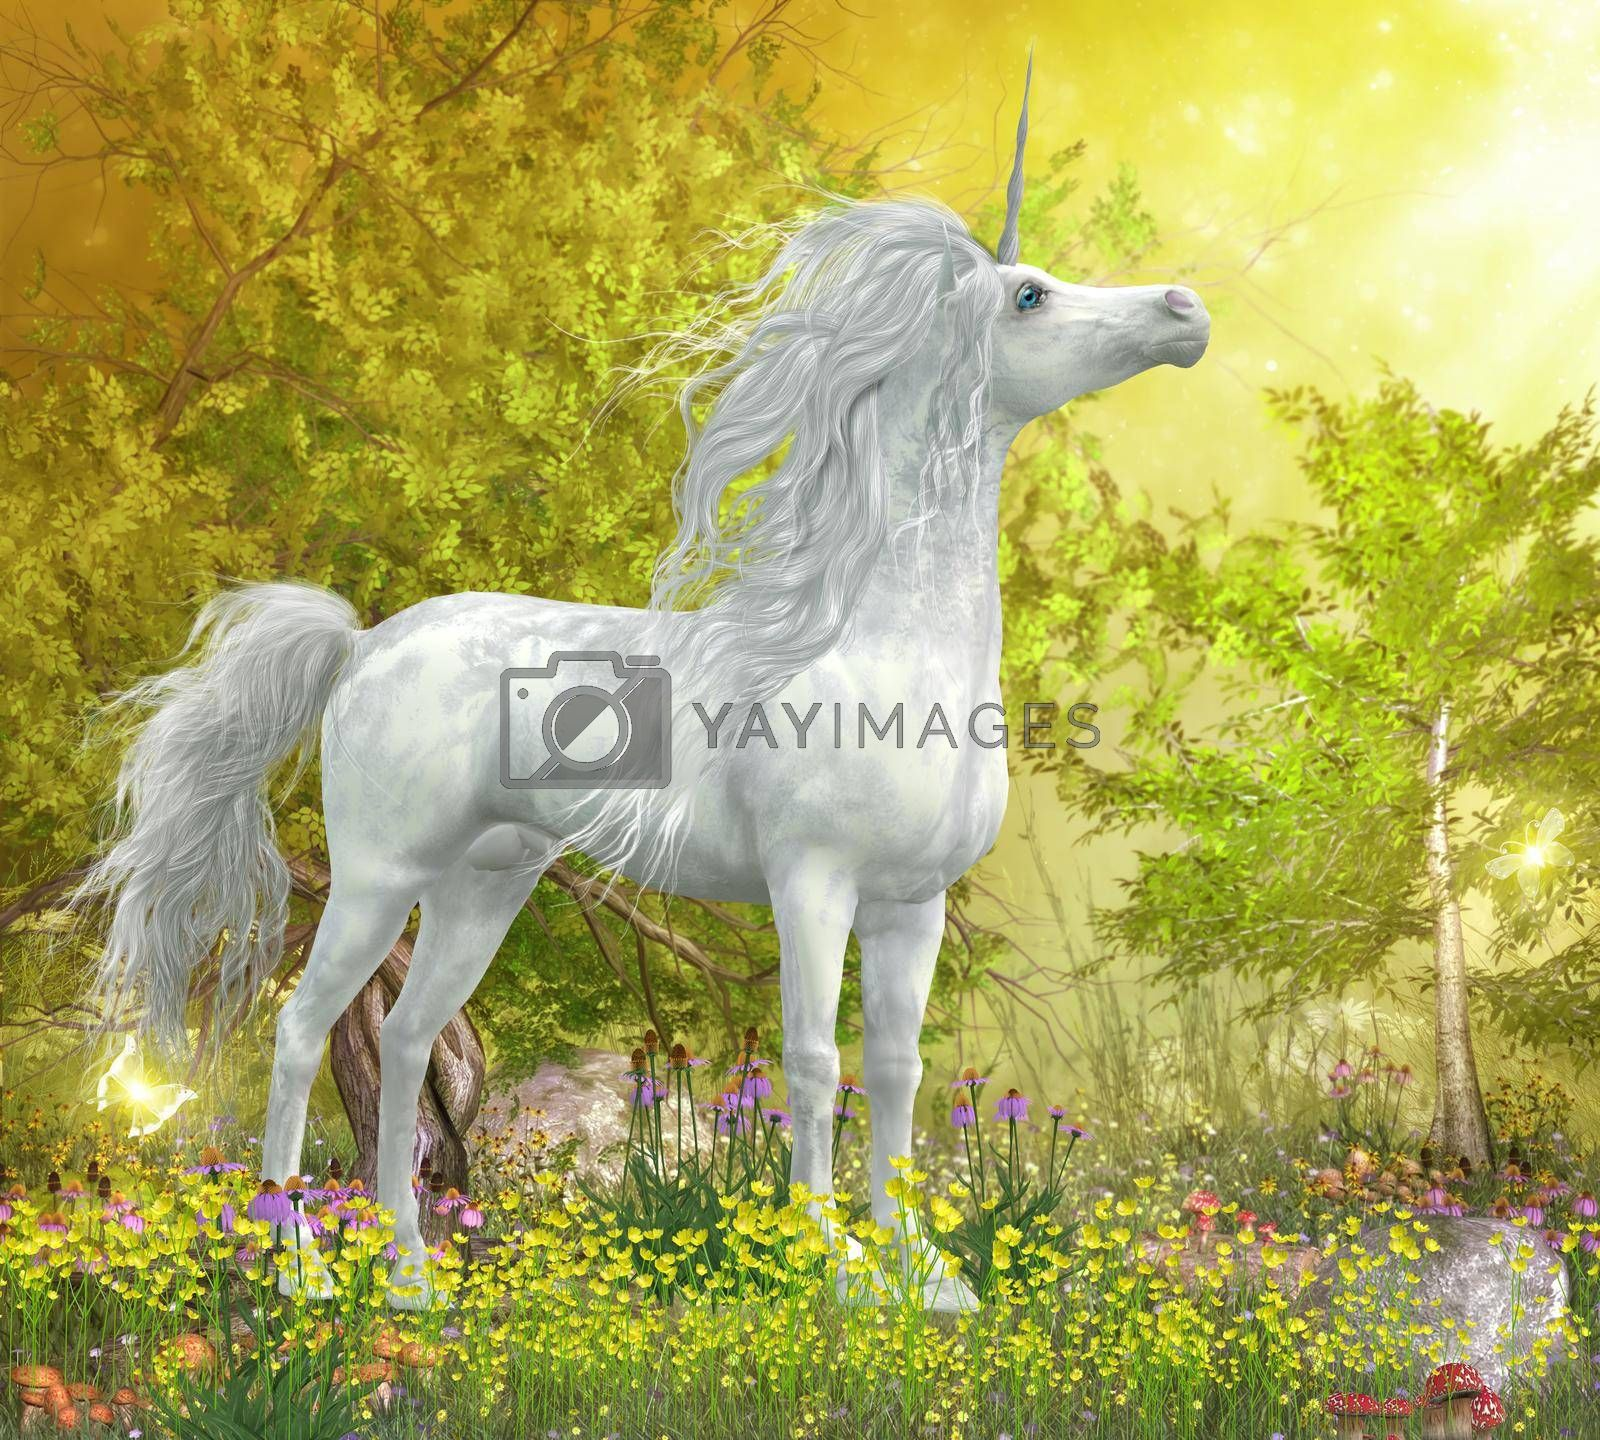 Royalty free image of Unicorn Stallion in Meadow by Catmando